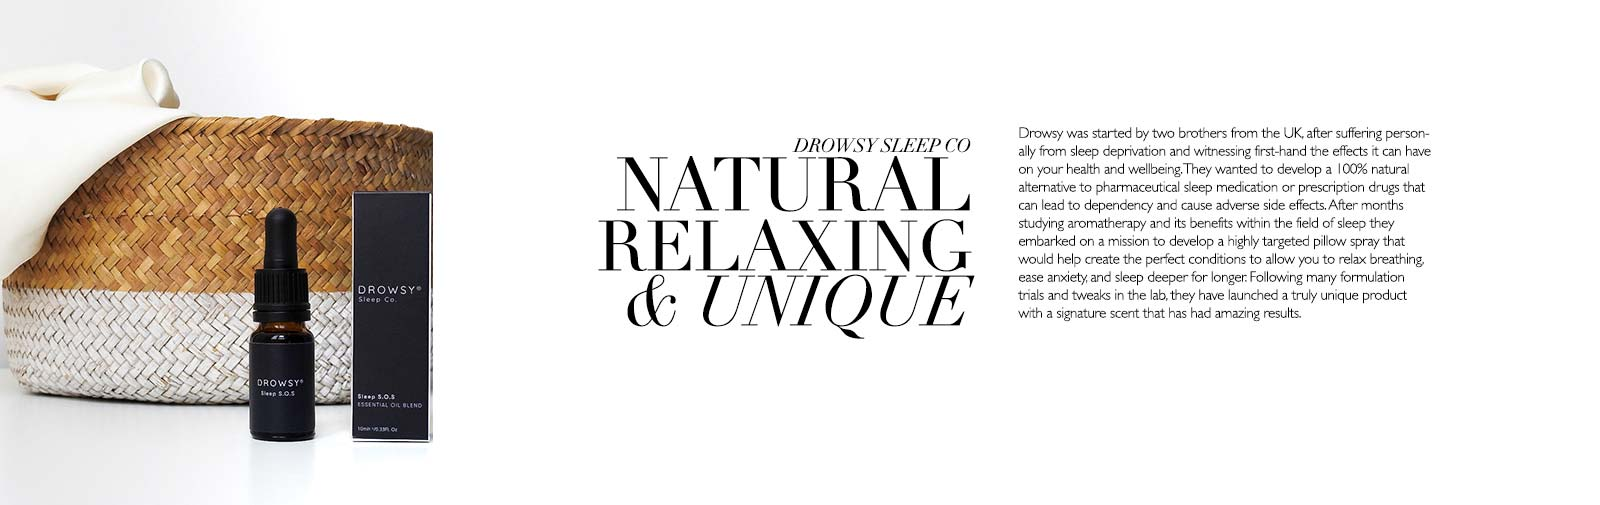 NATURAL RELAXING & UNIQUE - Drowsy was started by two brothers from the UK, after suffering personally from sleep deprivation and witnessing first-hand the effects it can have on your health and wellbeing. They wanted to develop a 100% natural alternative to pharmaceutical sleep medication or prescription drugs that can lead to dependency and cause adverse side effects. After months studying aromatherapy and its benefits within the field of sleep they embarked on a mission to develop a highly targeted pillow spray that would help create the perfect conditions to allow you to relax breathing, ease anxiety, and sleep deeper for longer. Following many formulation trials and tweaks in the lab, they have launched a truly unique product with a signature scent that has had amazing results.